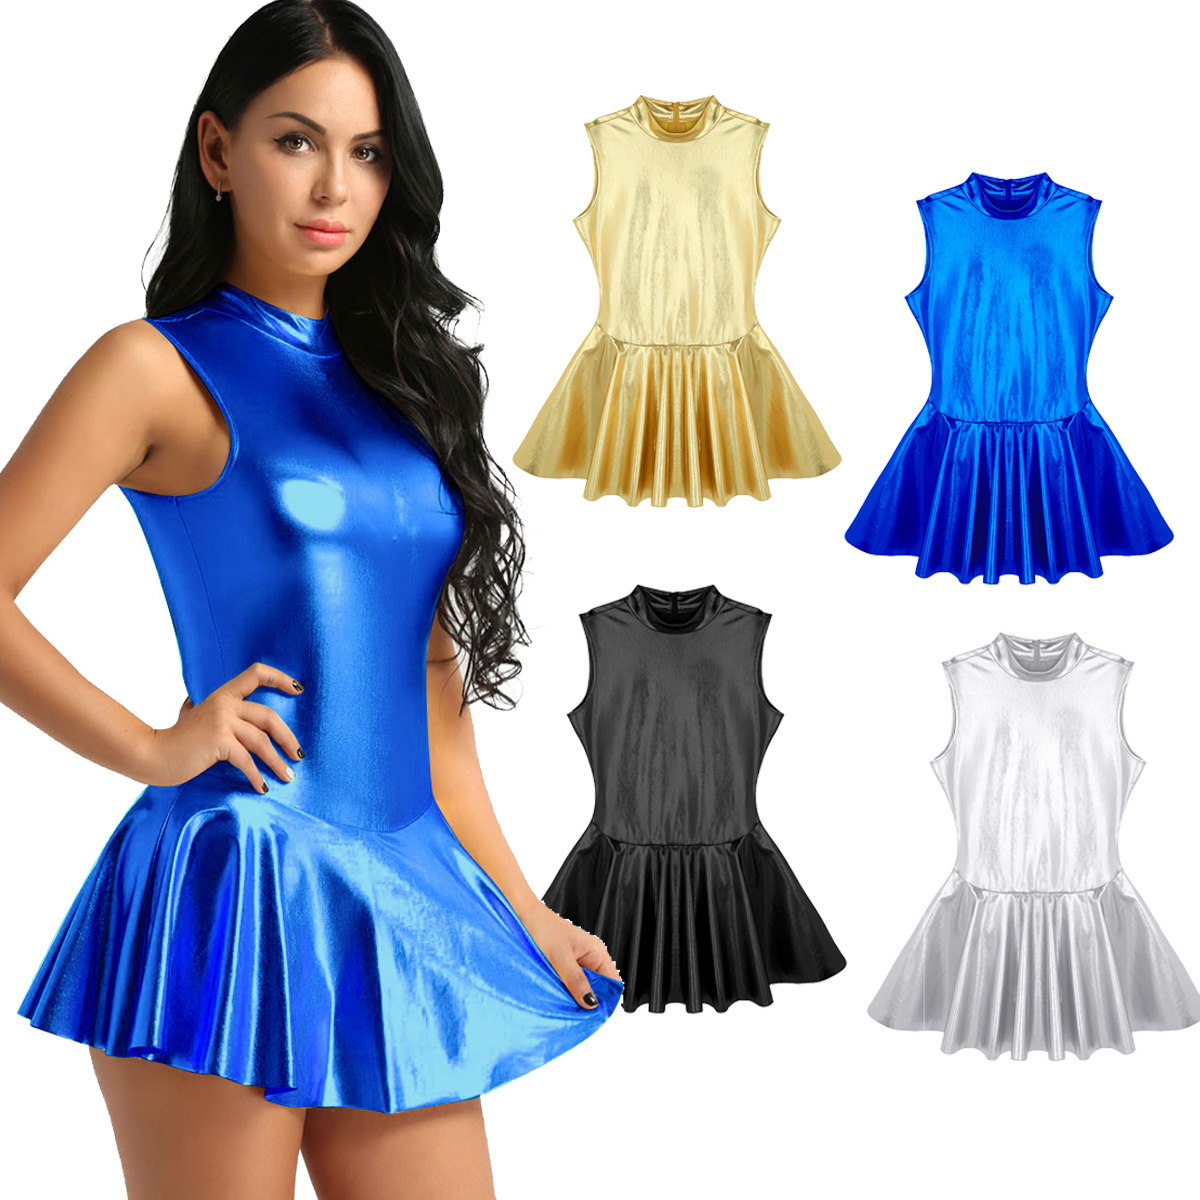 Womens Femme Pole Dancing Dress Shiny Metallic Stand Collar Back Zippered A-line Night Party Clubwear for Lyrical Dance Costumes